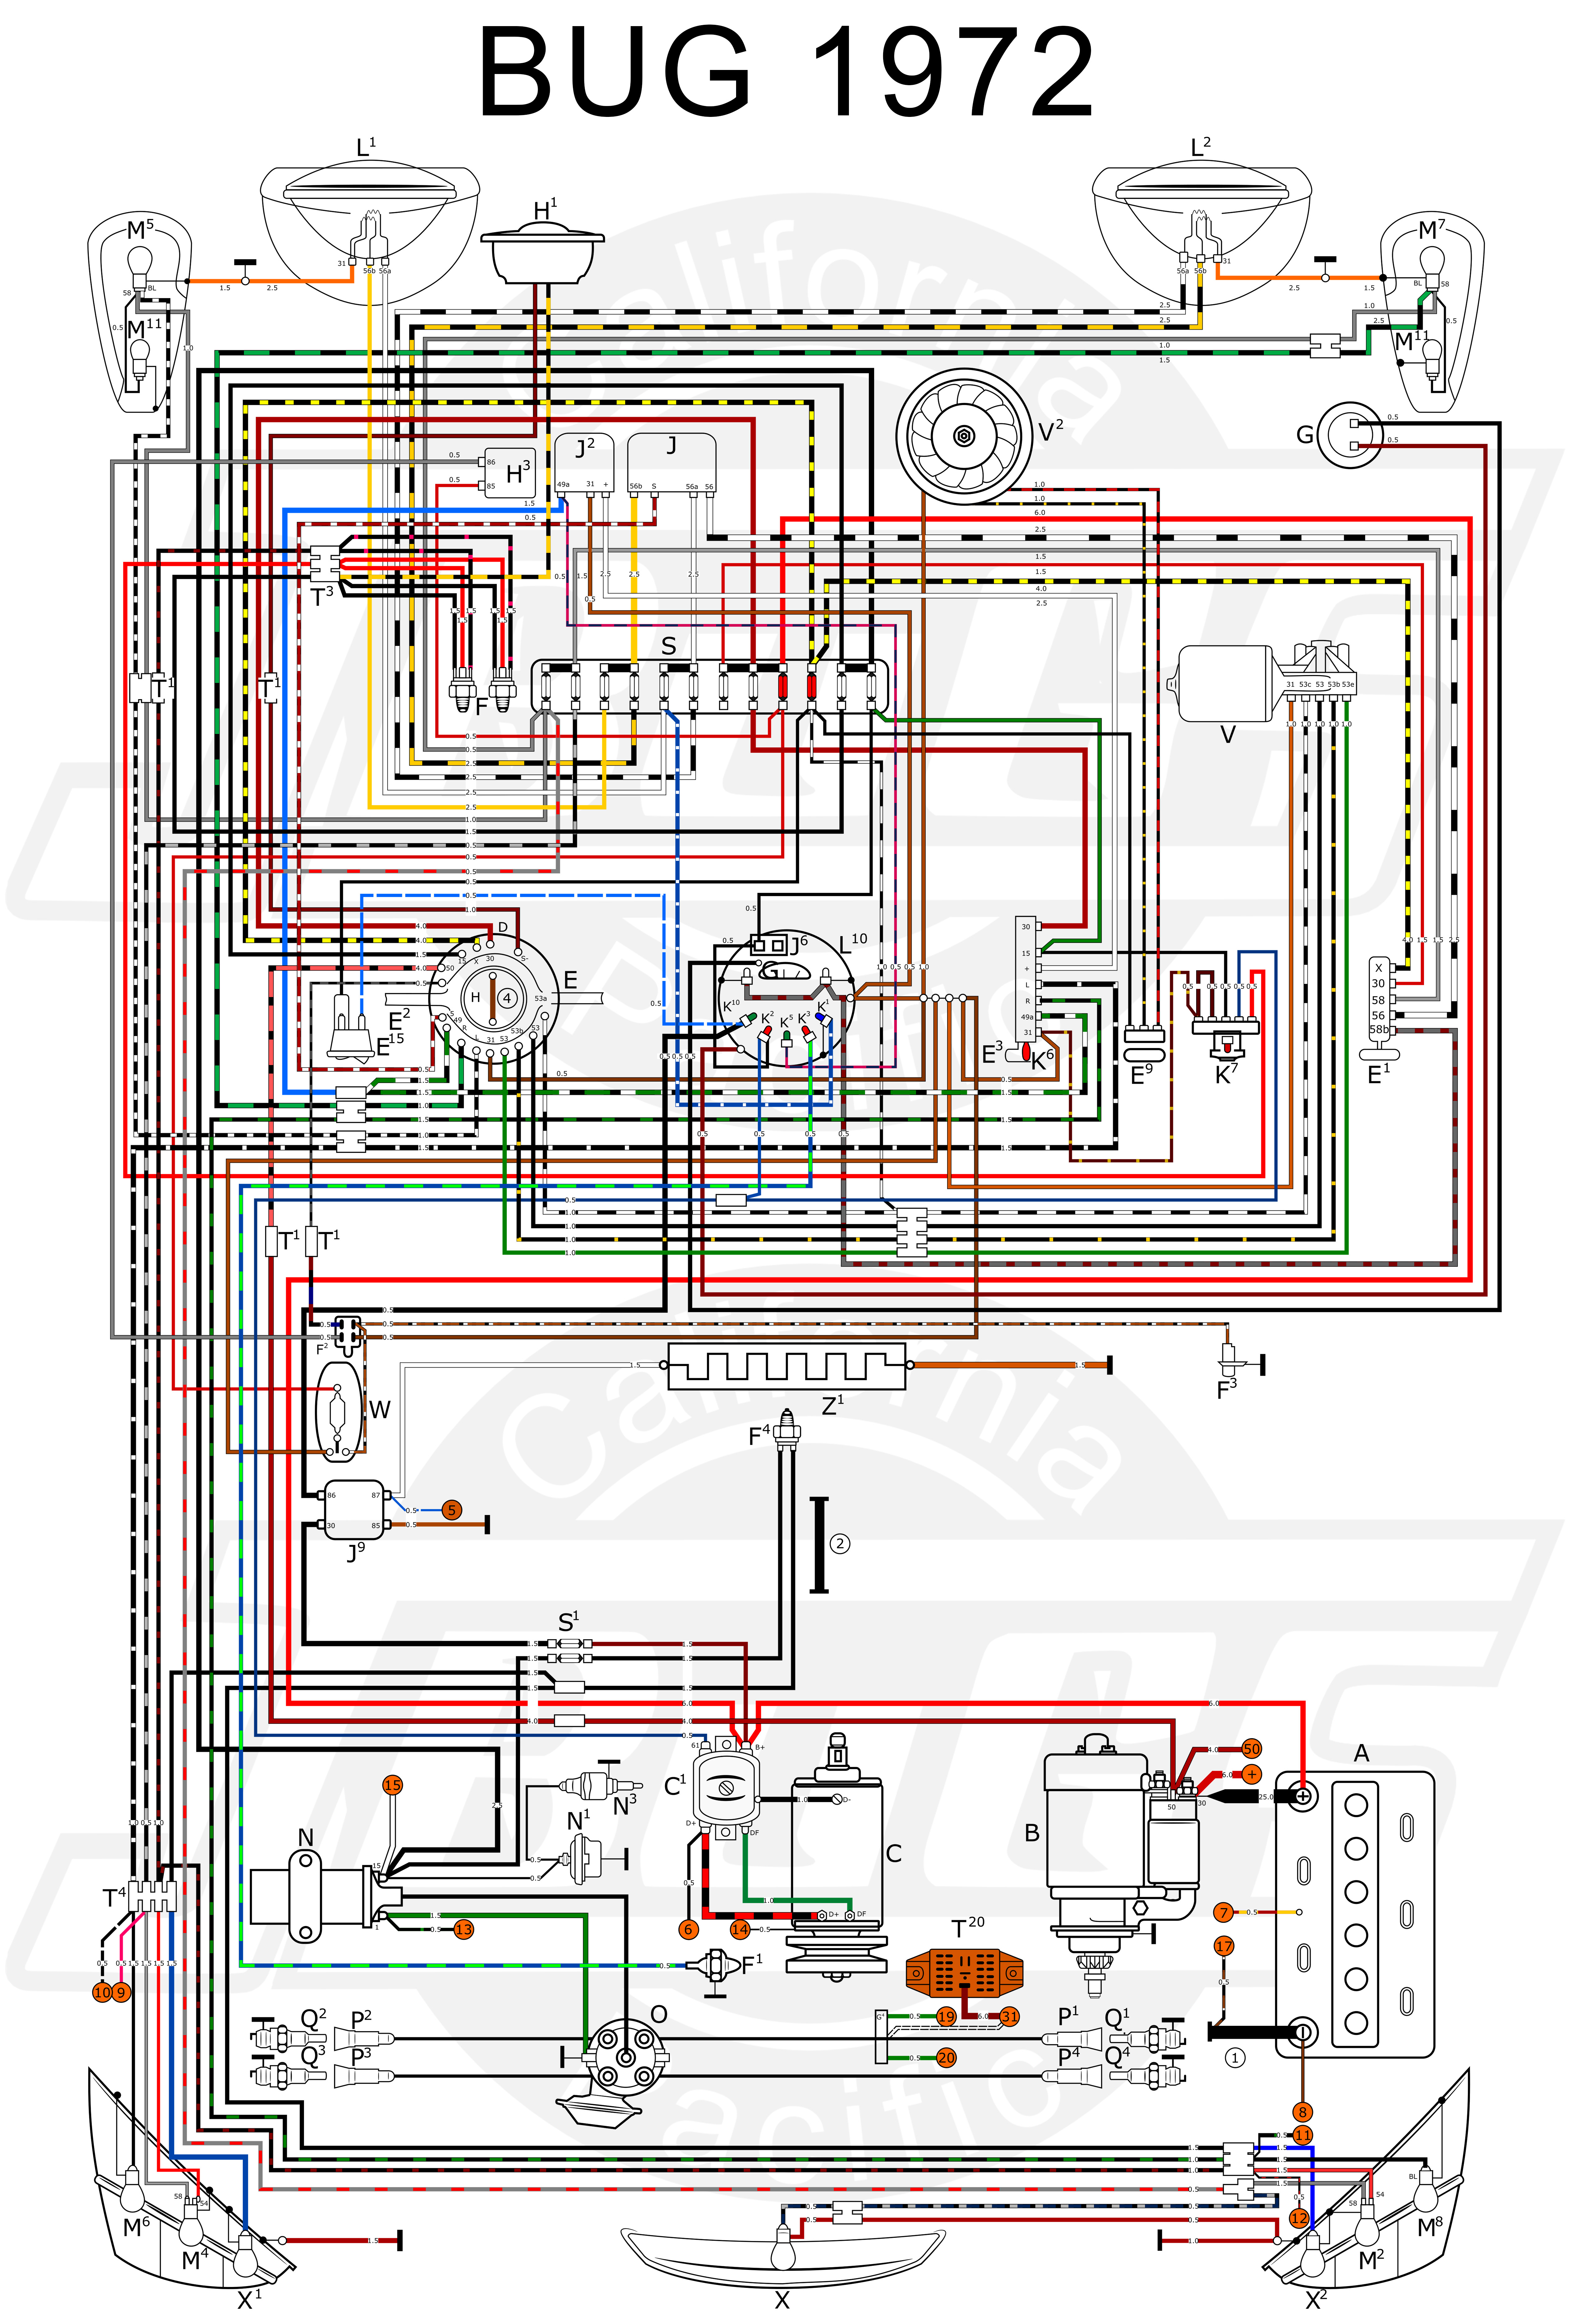 Vw Bug Battery Wiring - Largest Wiring Diagrams •  Beetle Wiring Diagram Lights on 1974 vw engine diagram, 74 beetle parts, 74 beetle solenoid, vw beetle diagram, 74 beetle seats, 74 beetle voltage regulator, 74 beetle exhaust, 74 beetle engine, 74 vw bug vacuum diagram, 74 beetle battery, 73 vw bug signal diagram,